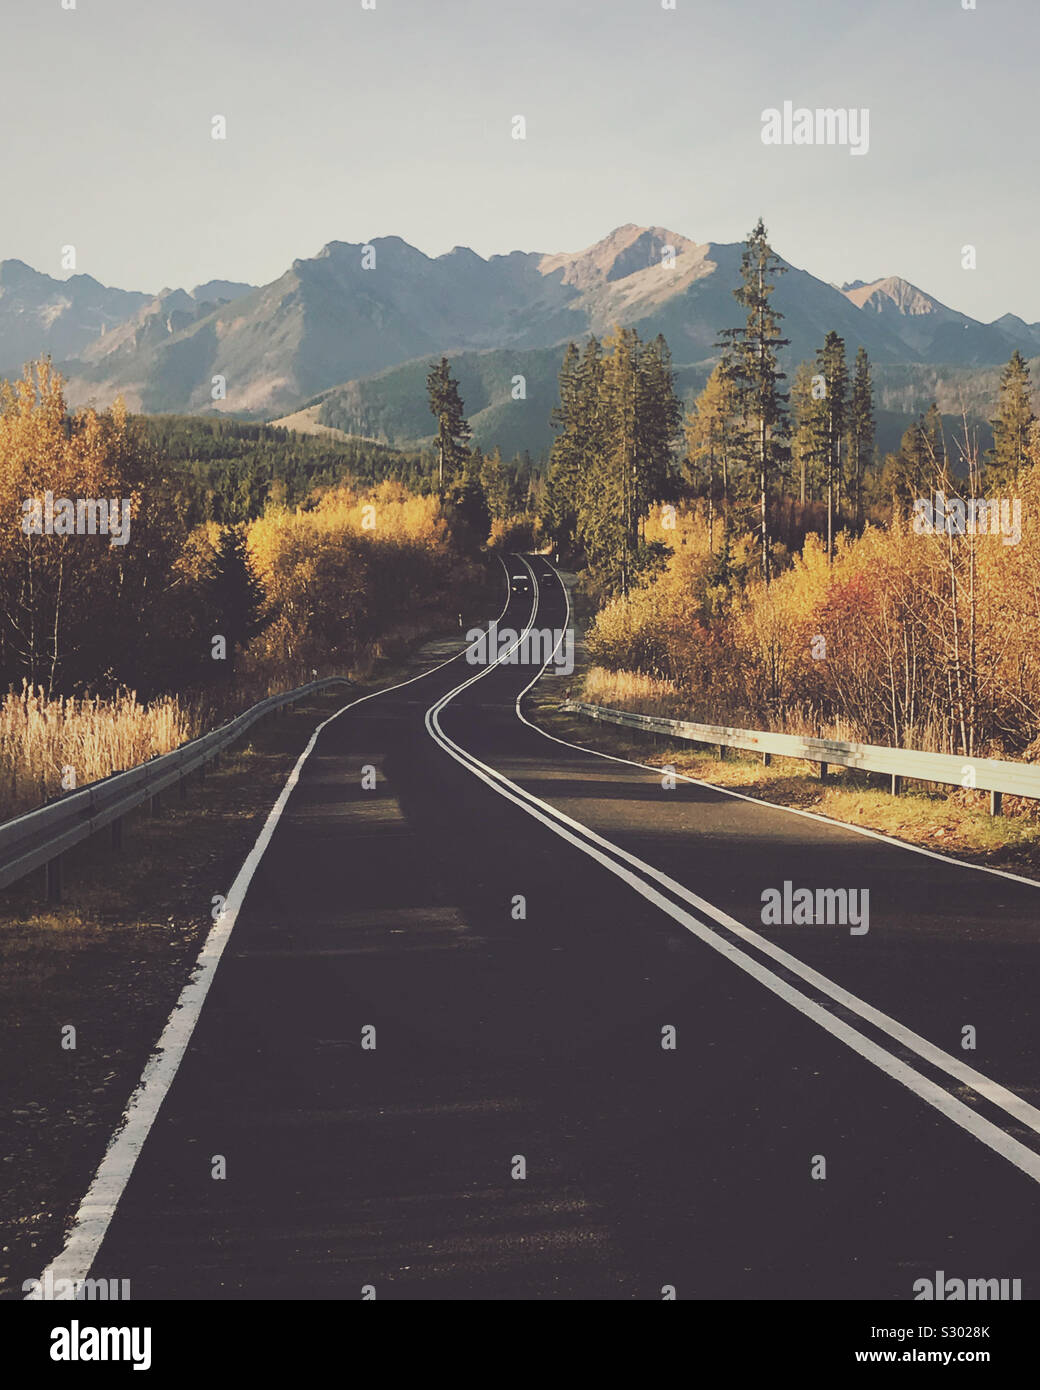 Autumn fall road landscape with view of the mountains. Stock Photo